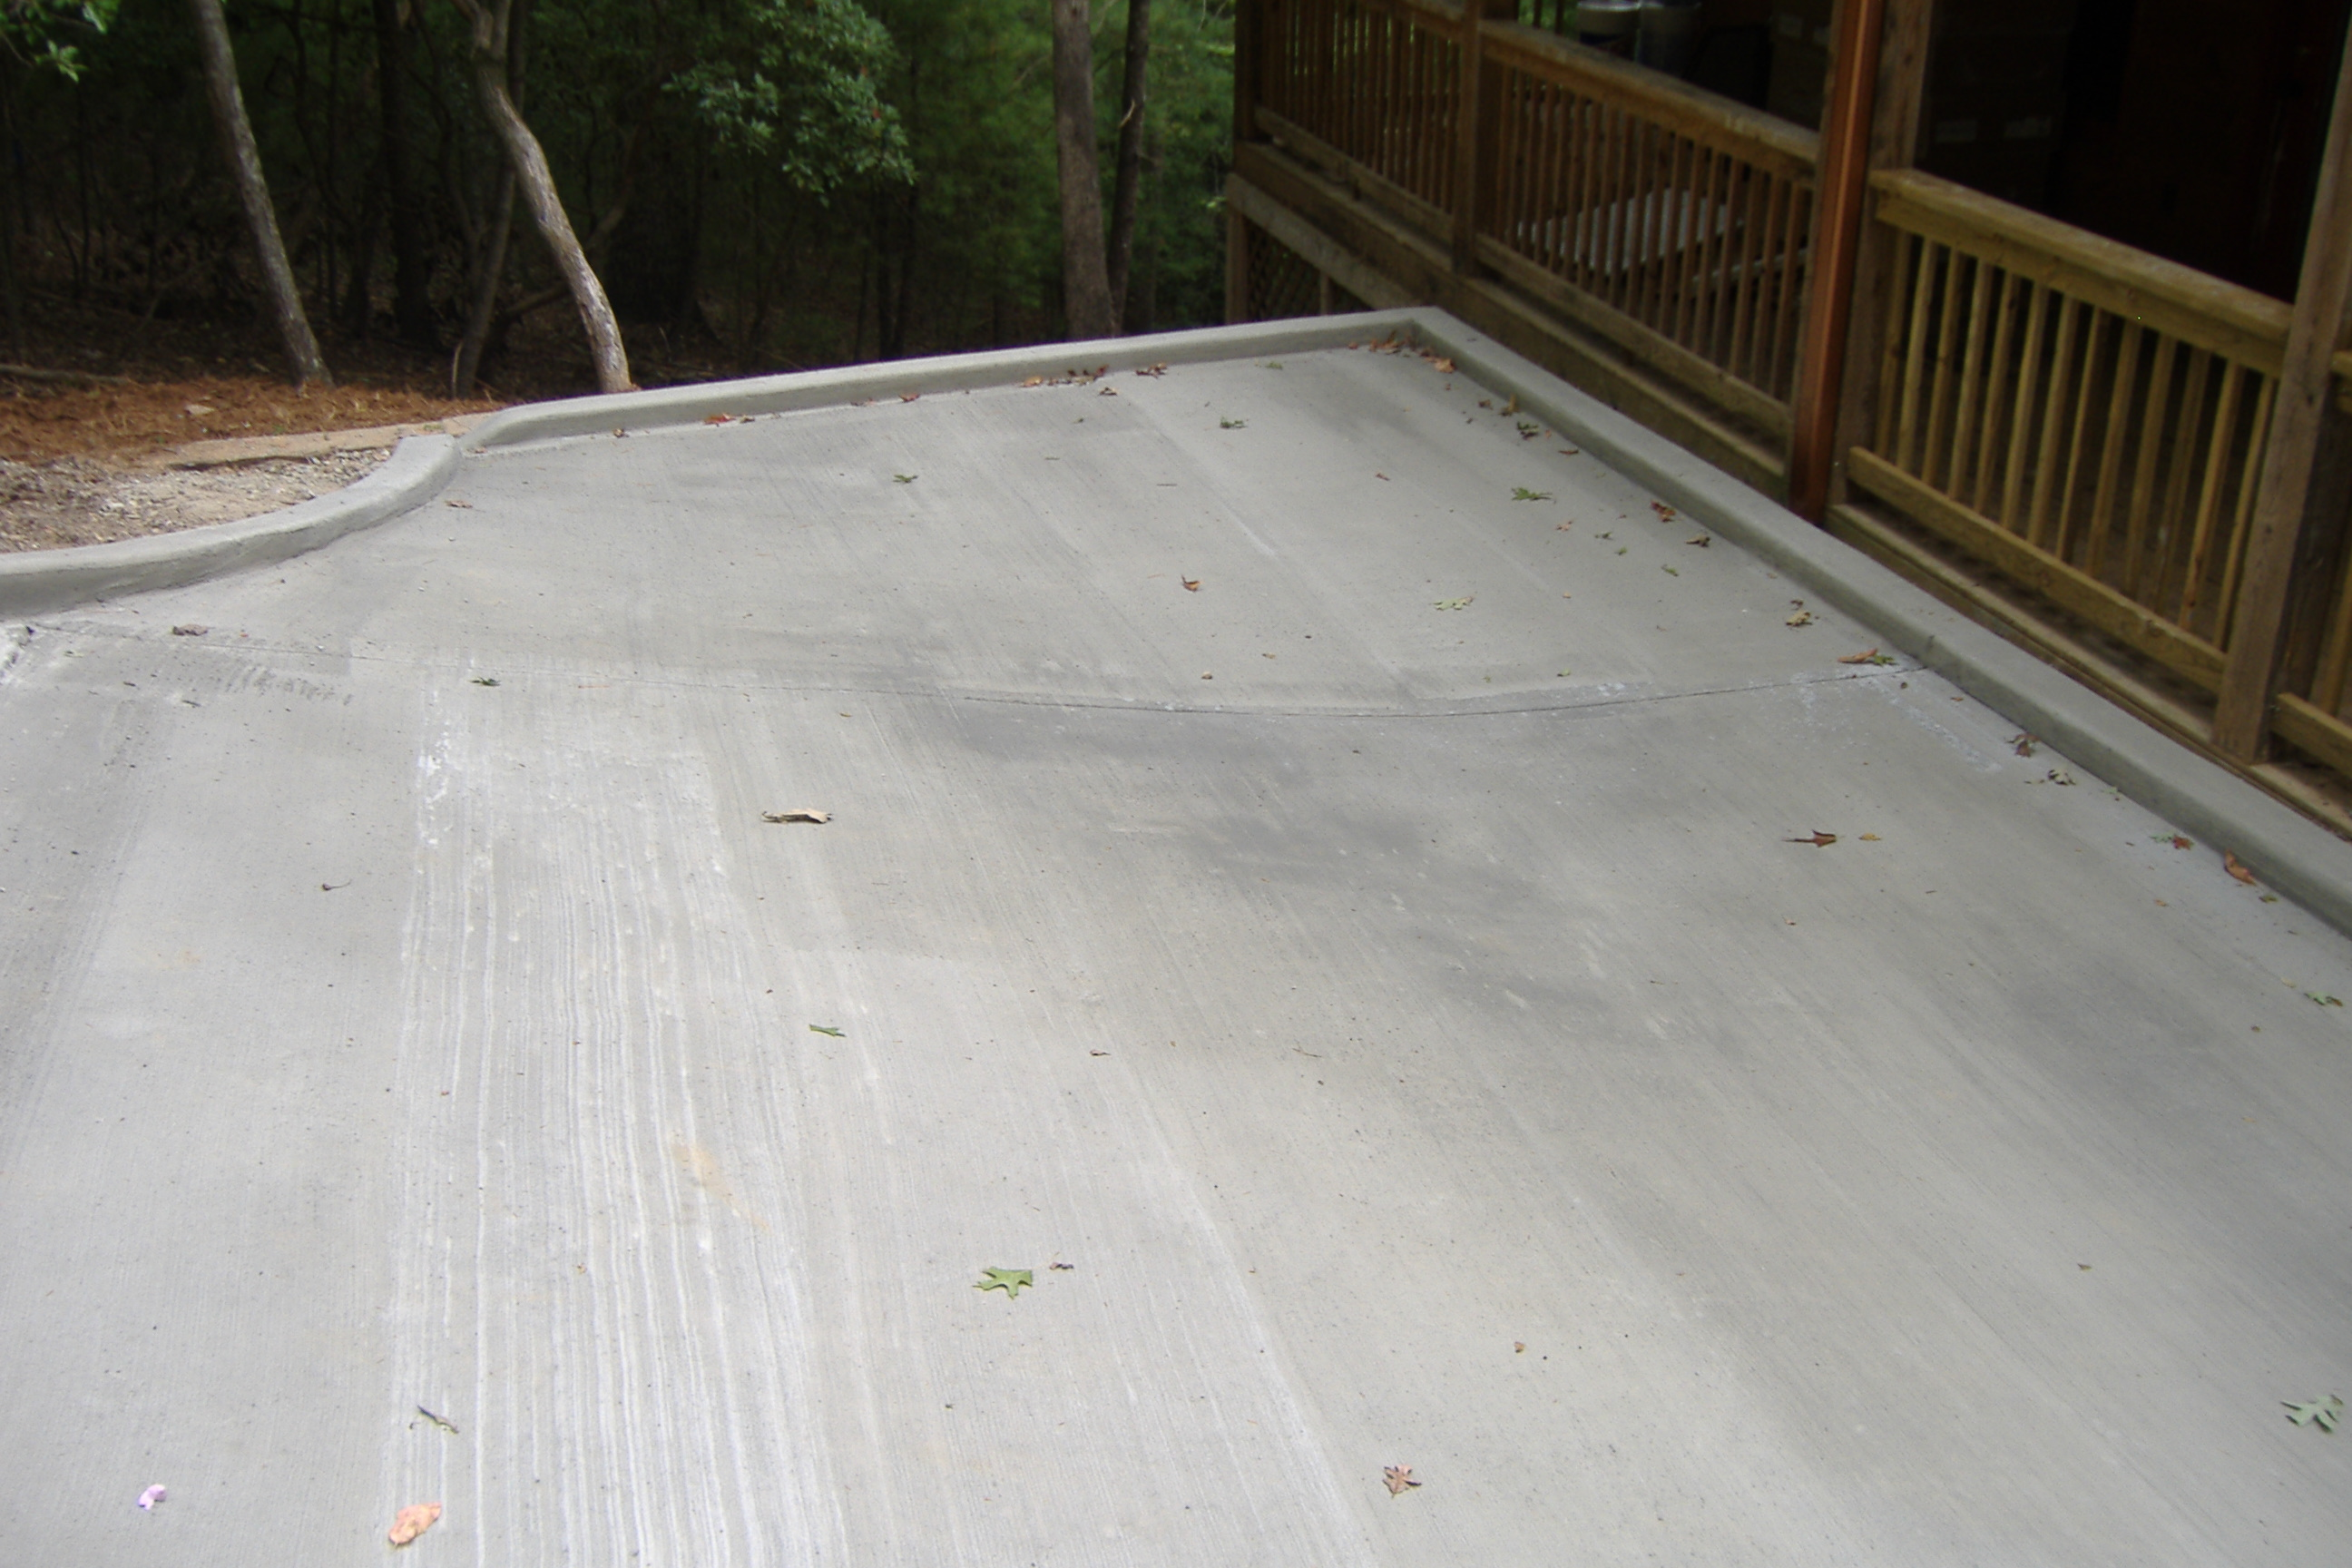 North georgia s highest quality concrete finishing for Concrete home builders in georgia